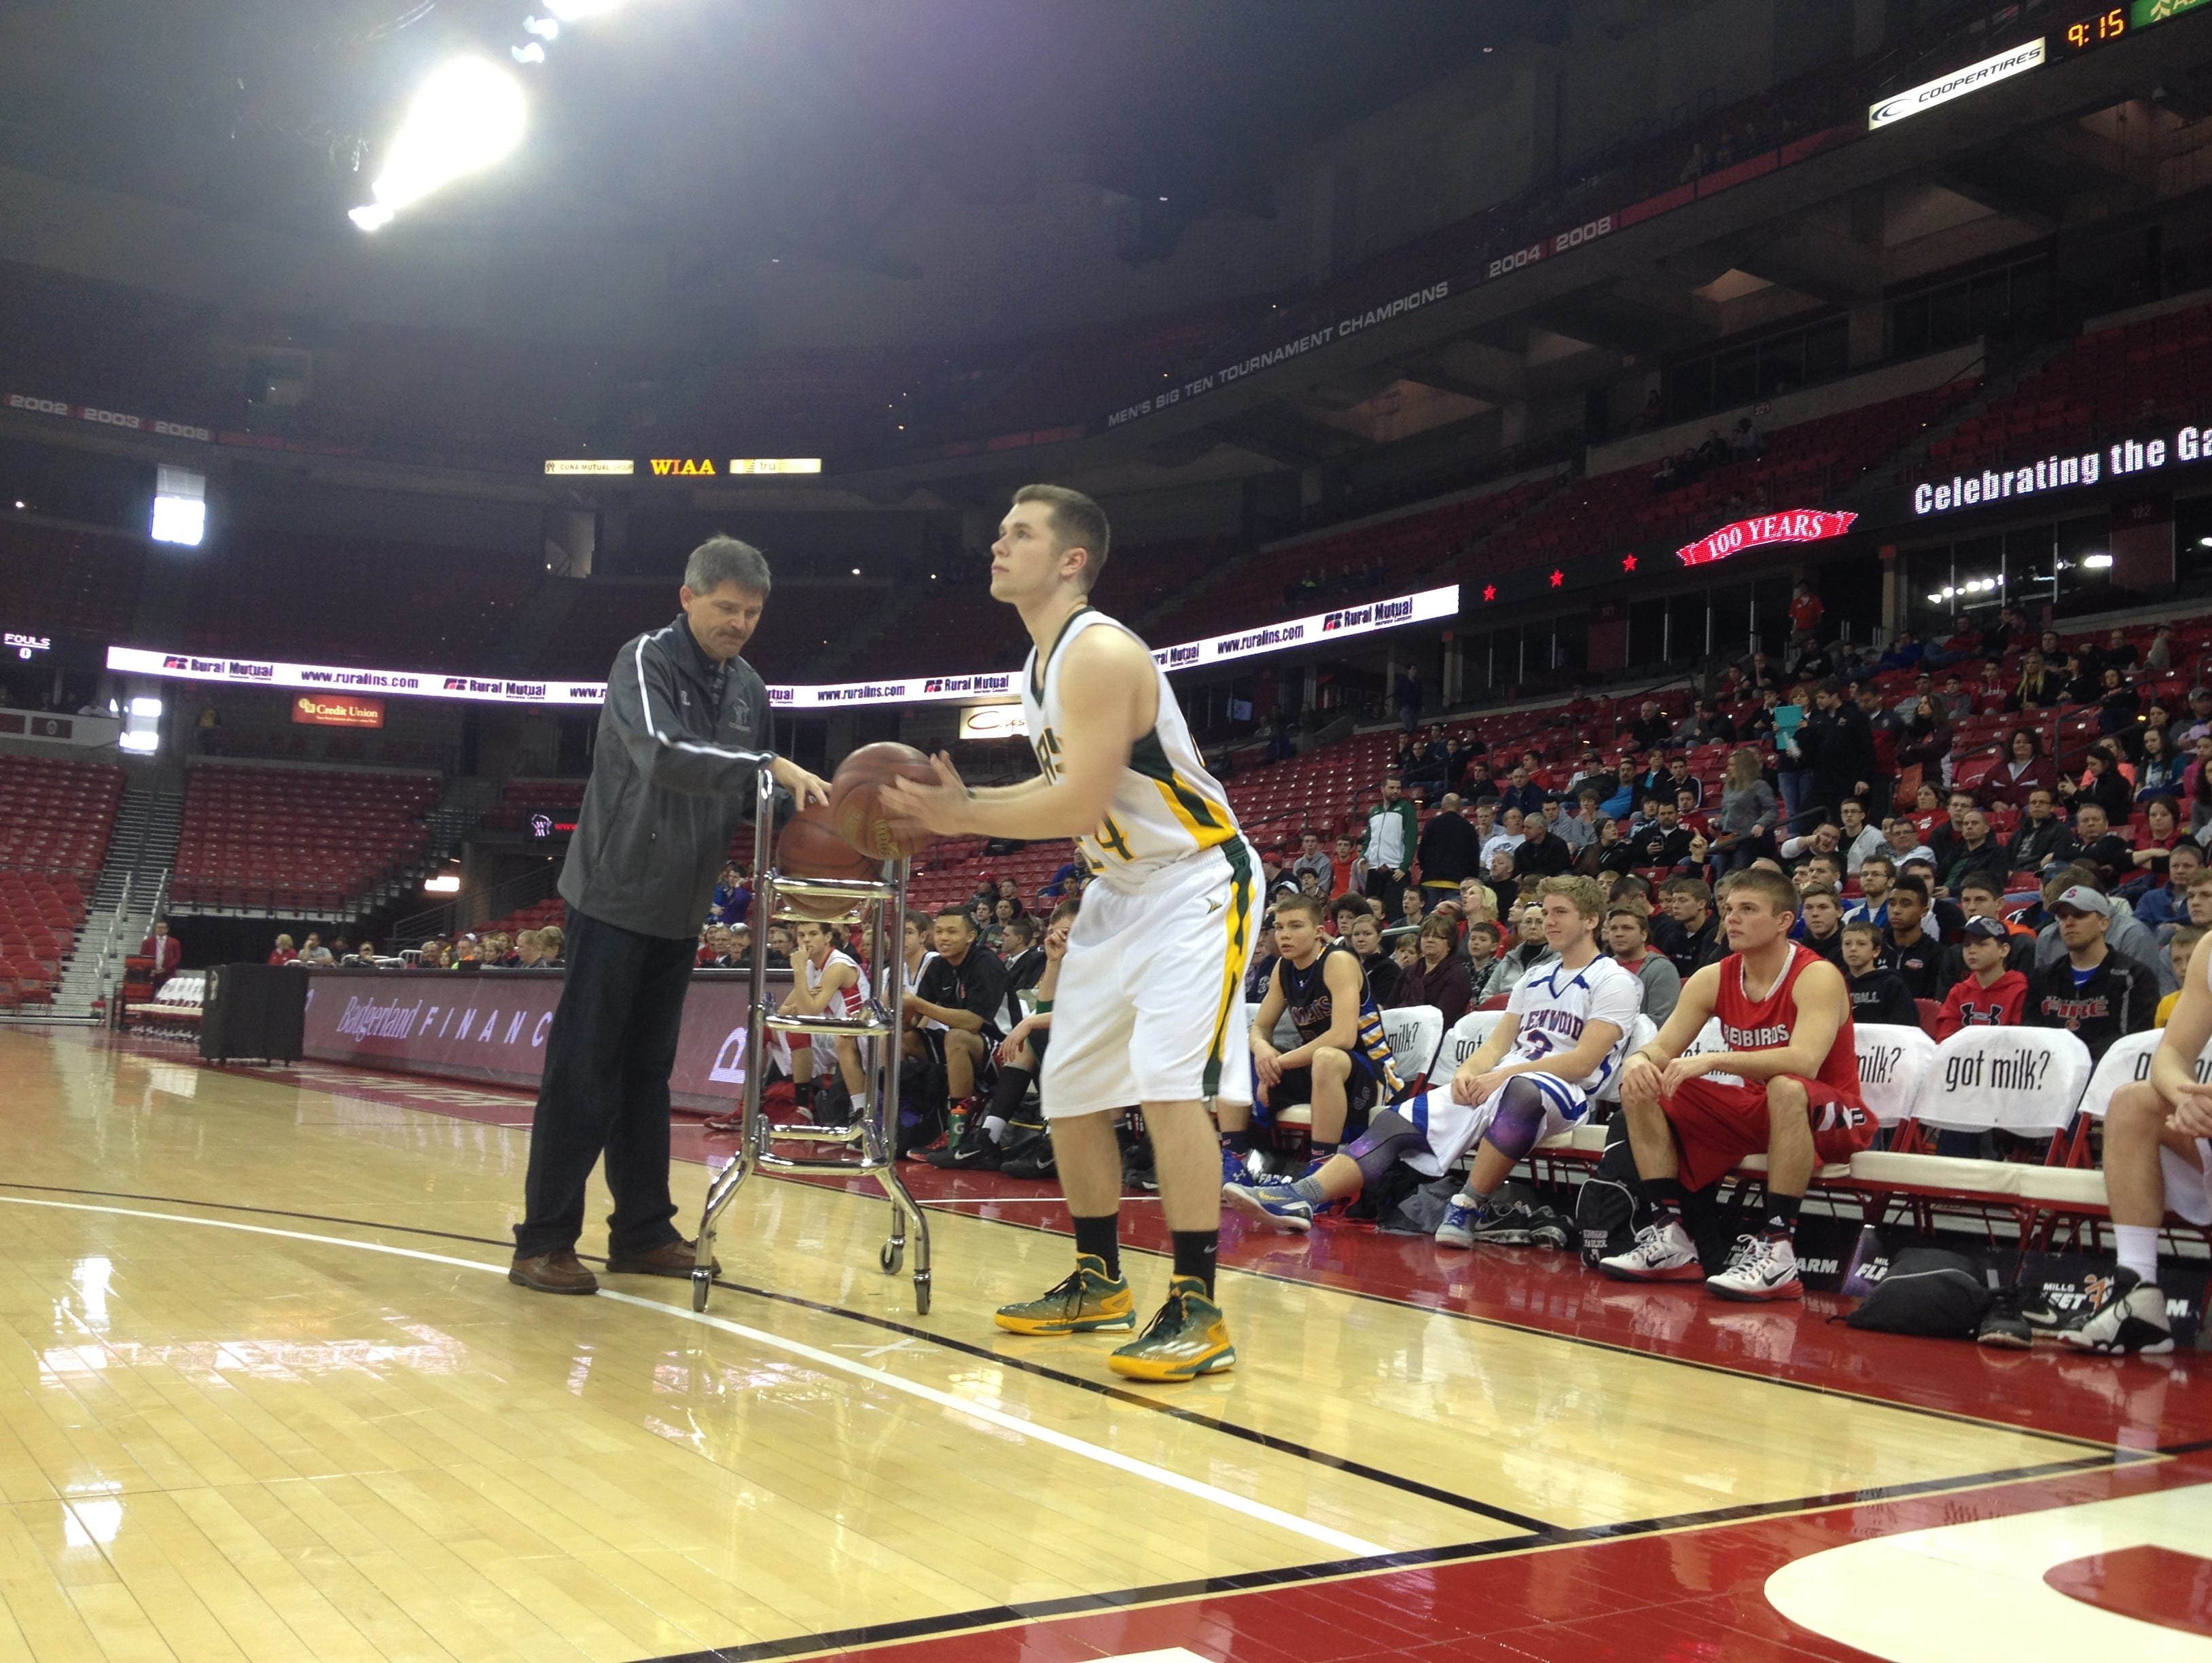 Freedom's Logan Maulick competes in a 3-point shooting contest Saturday as part of the WIAA boys' state basketball tournament at the Kohl Center in Madison.